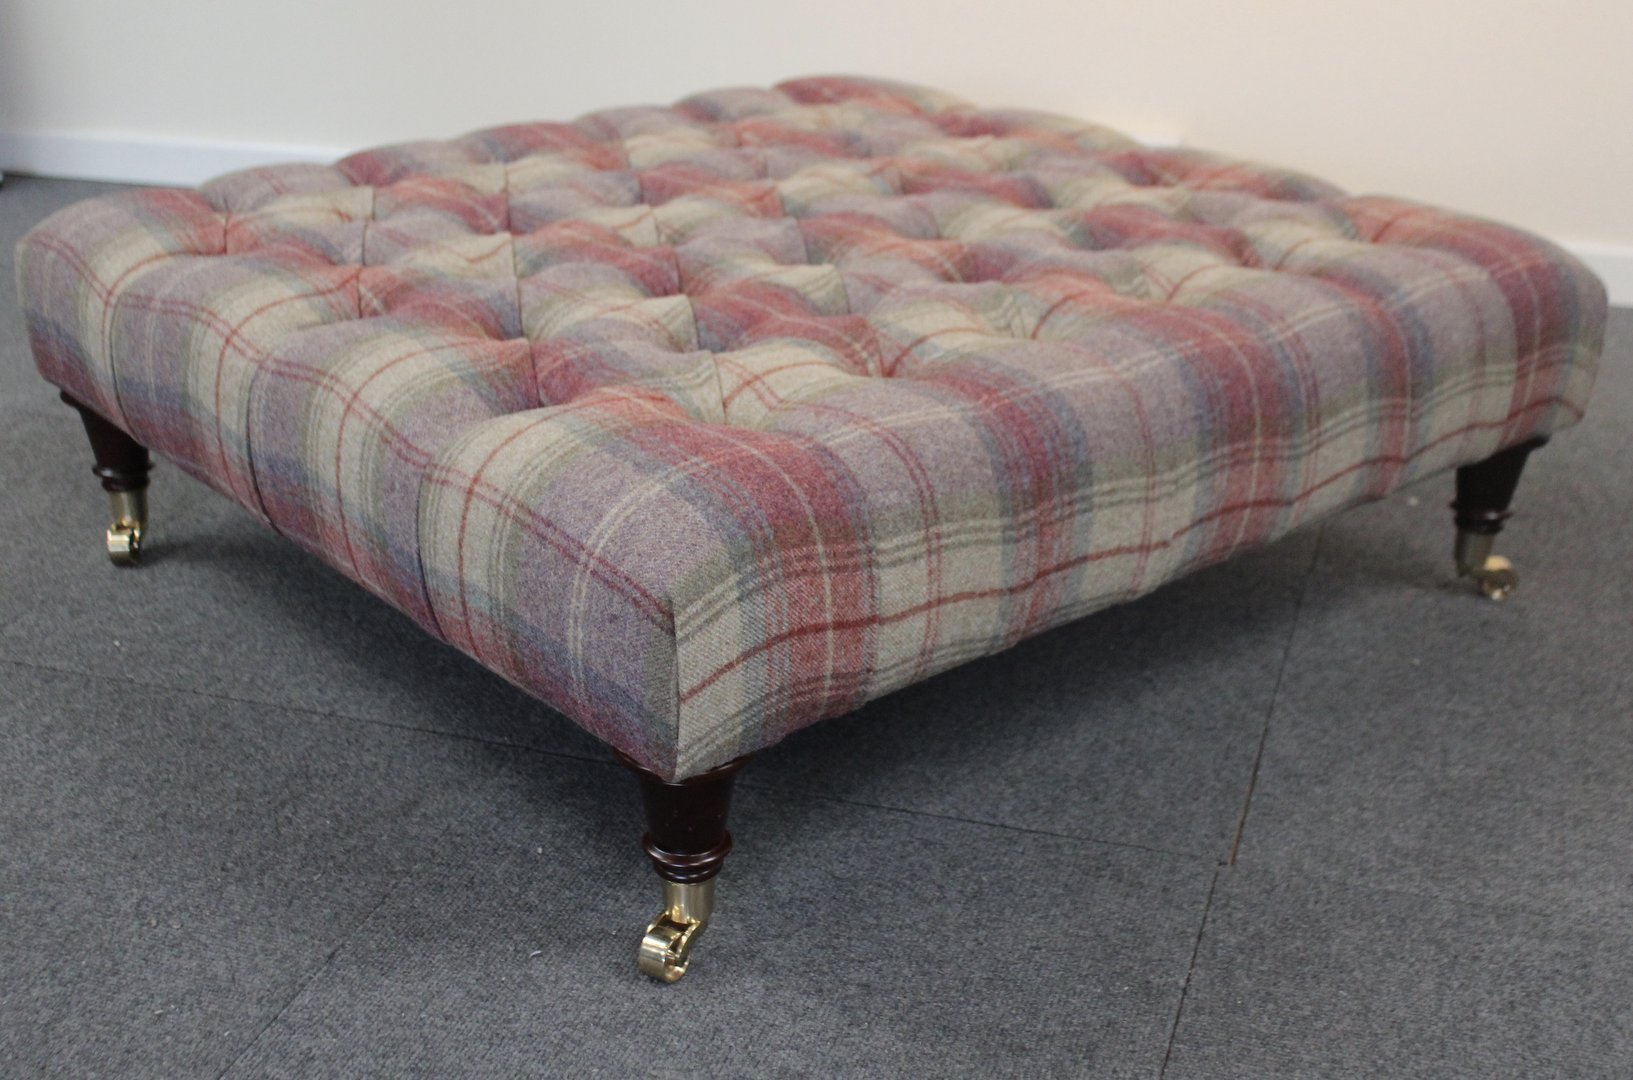 Square Extra Large Coffee Table/ Footstool Tweed/Tartan Fabric